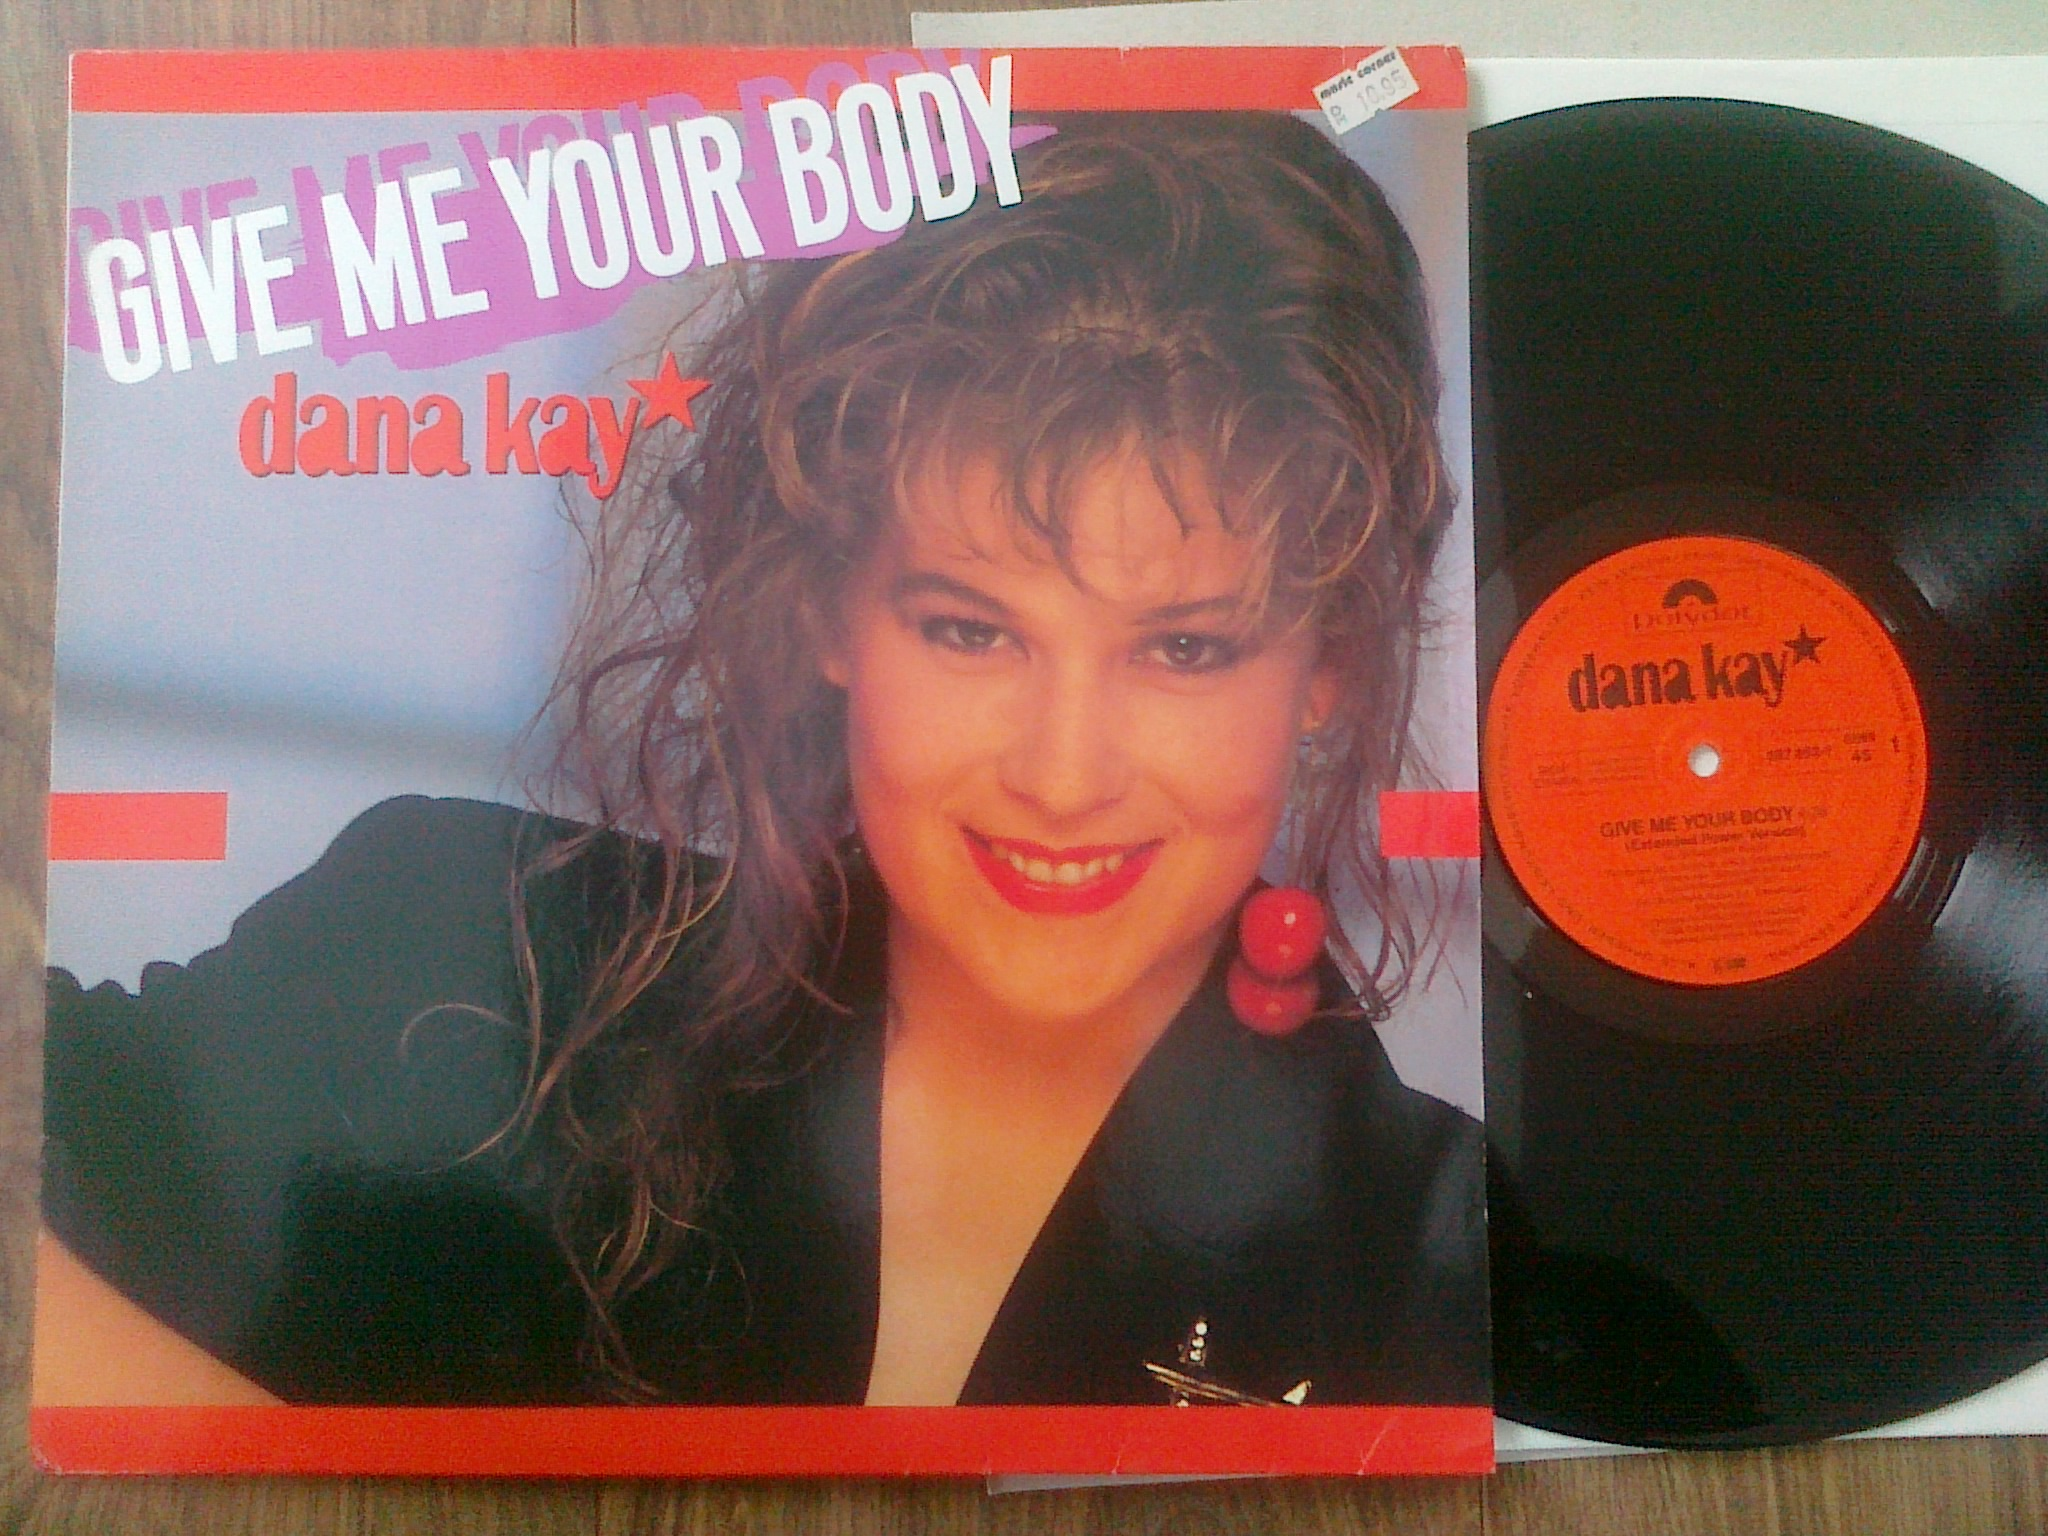 Dana Kay - Give Me Your Body